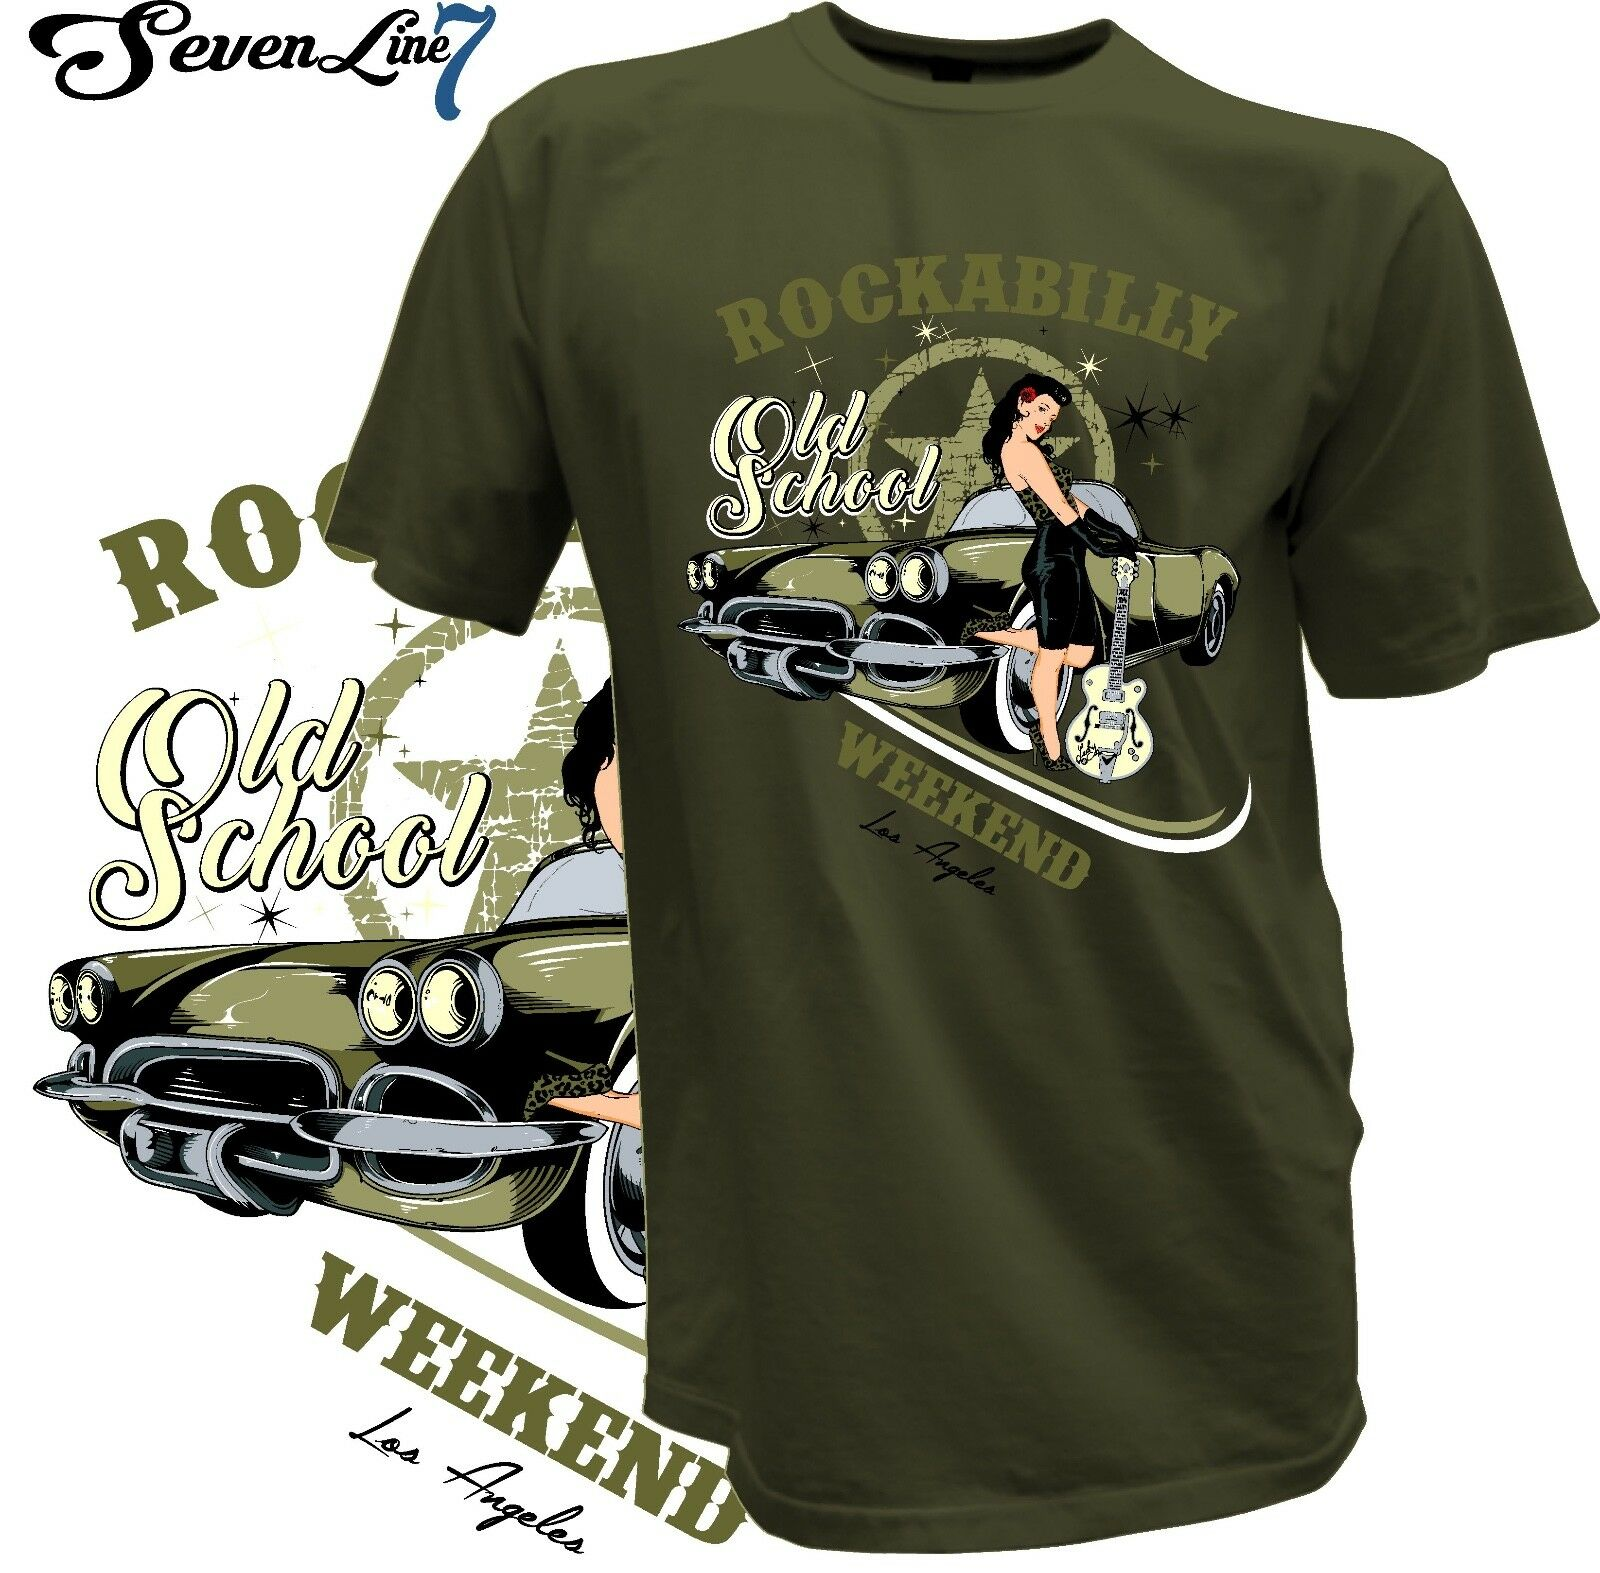 2019 Cool 2018 Fashion Cool Male Tee <font><b>Shirts</b></font> Pin Up Bombshell Queen Girl Rockabilly Hot Rod Old School <font><b>V8</b></font> <font><b>T</b></font> <font><b>Shirt</b></font> Unisex Tee image